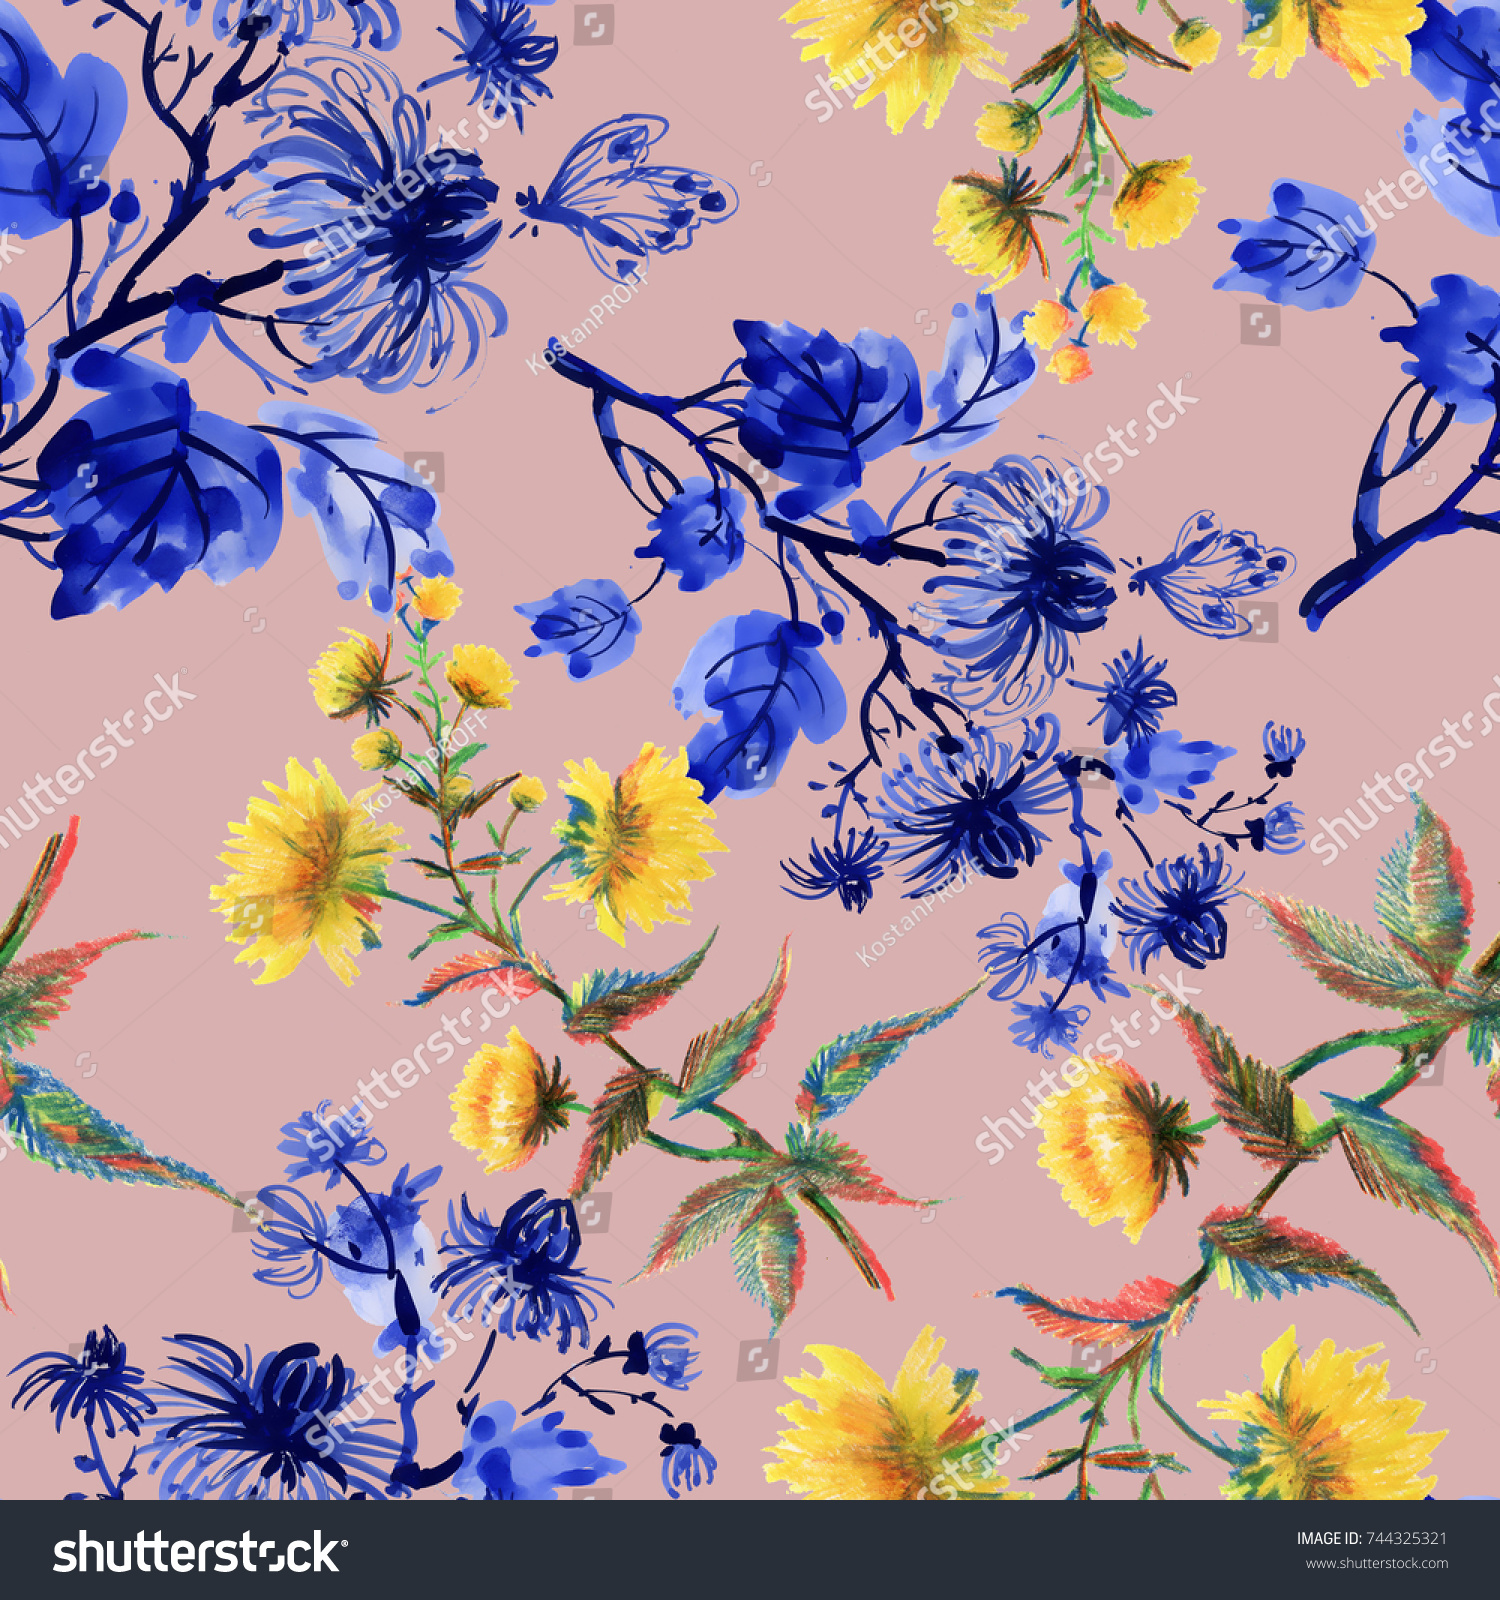 Watercolor Hand Drawn Seamless Pattern With Yellow And Blue Flowers